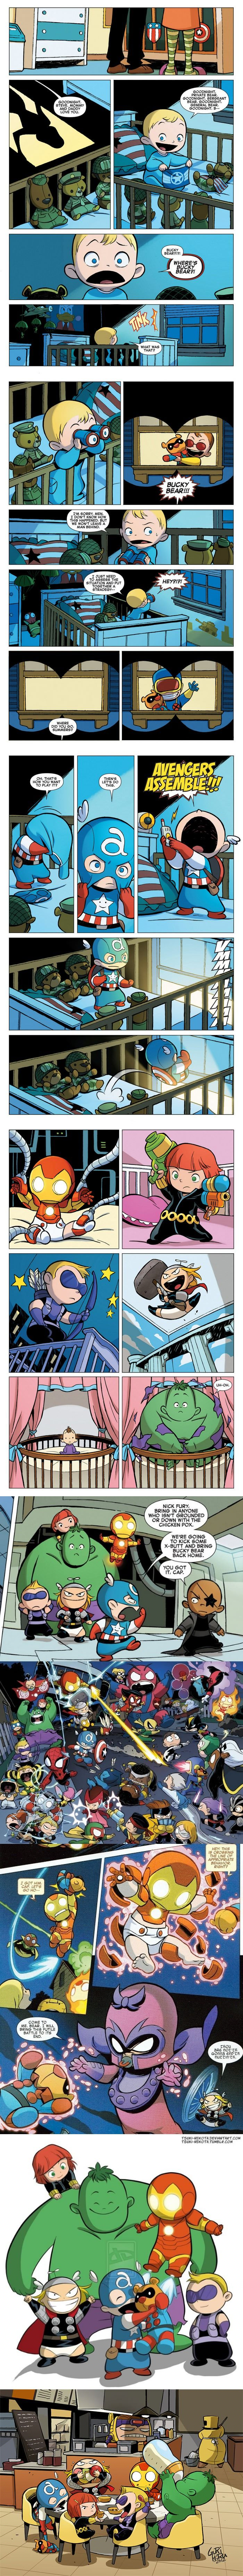 Baby avengers!! This is the cutest thing ever!